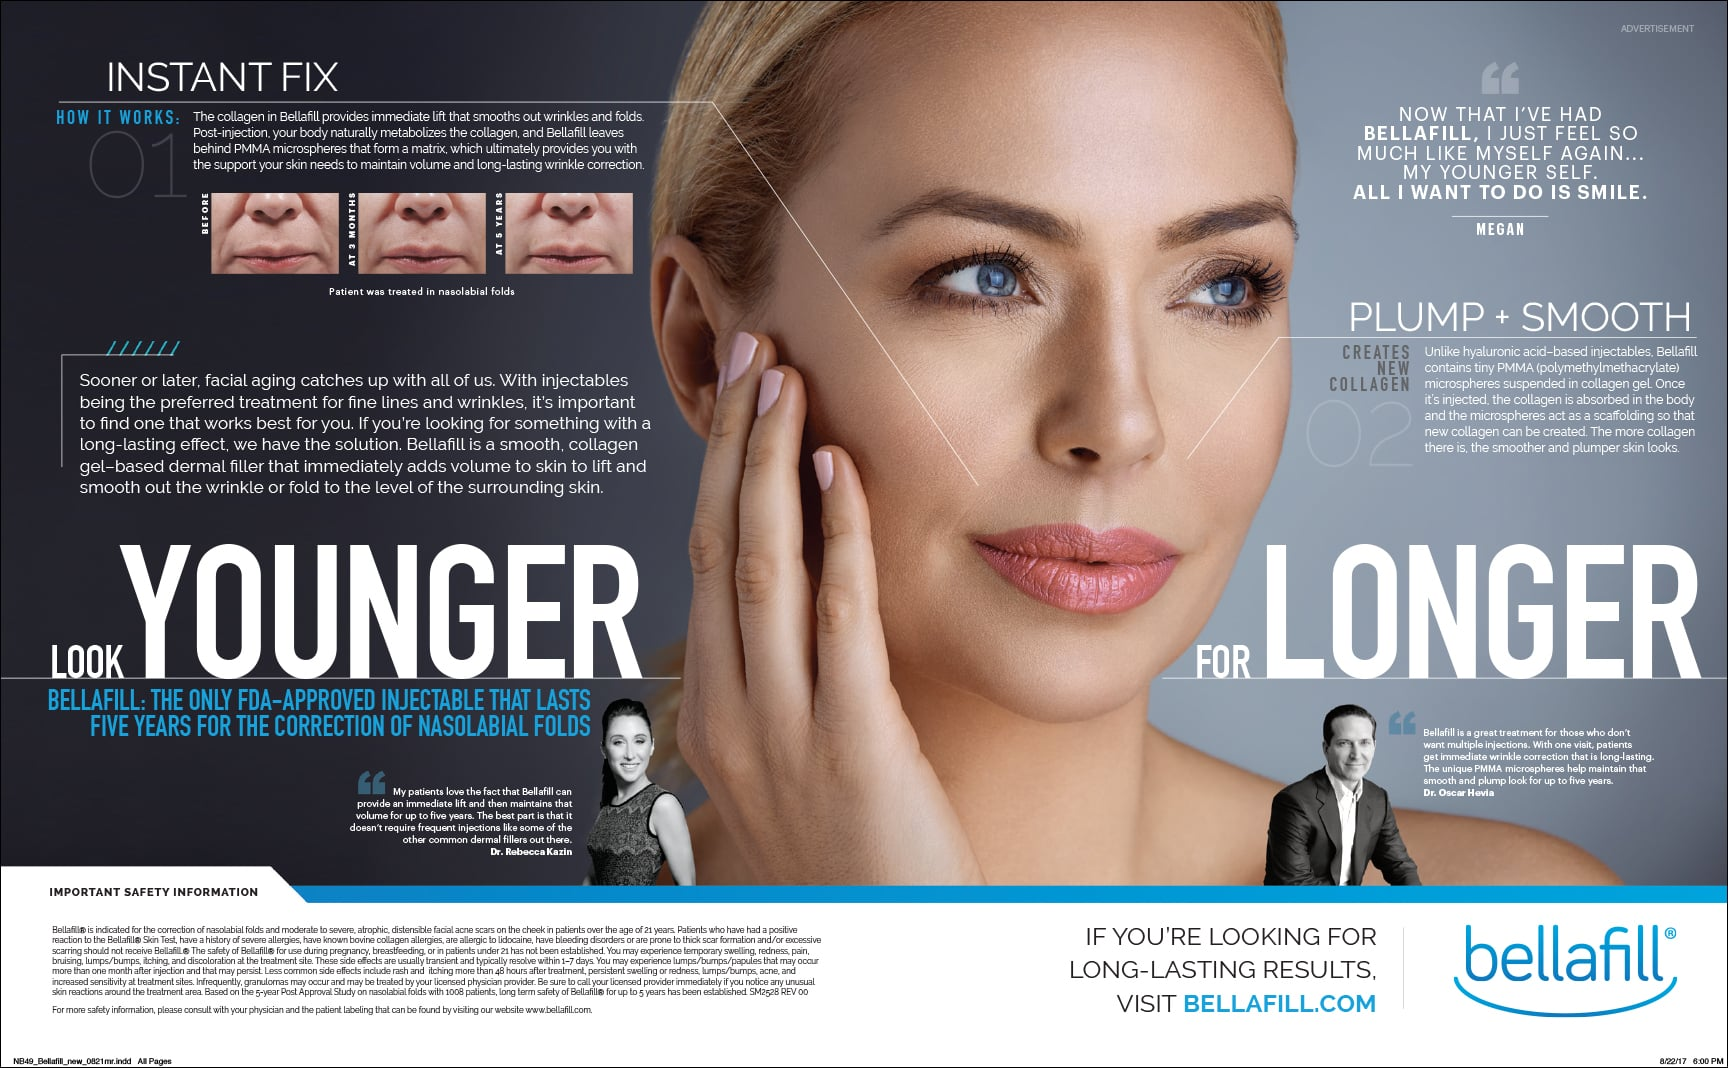 Look for the Bellafill ad in the latest issue of New Beauty Magazine. Then call Well Medical Arts in West Seattle at 206-935-5689 to schedule your consultation.